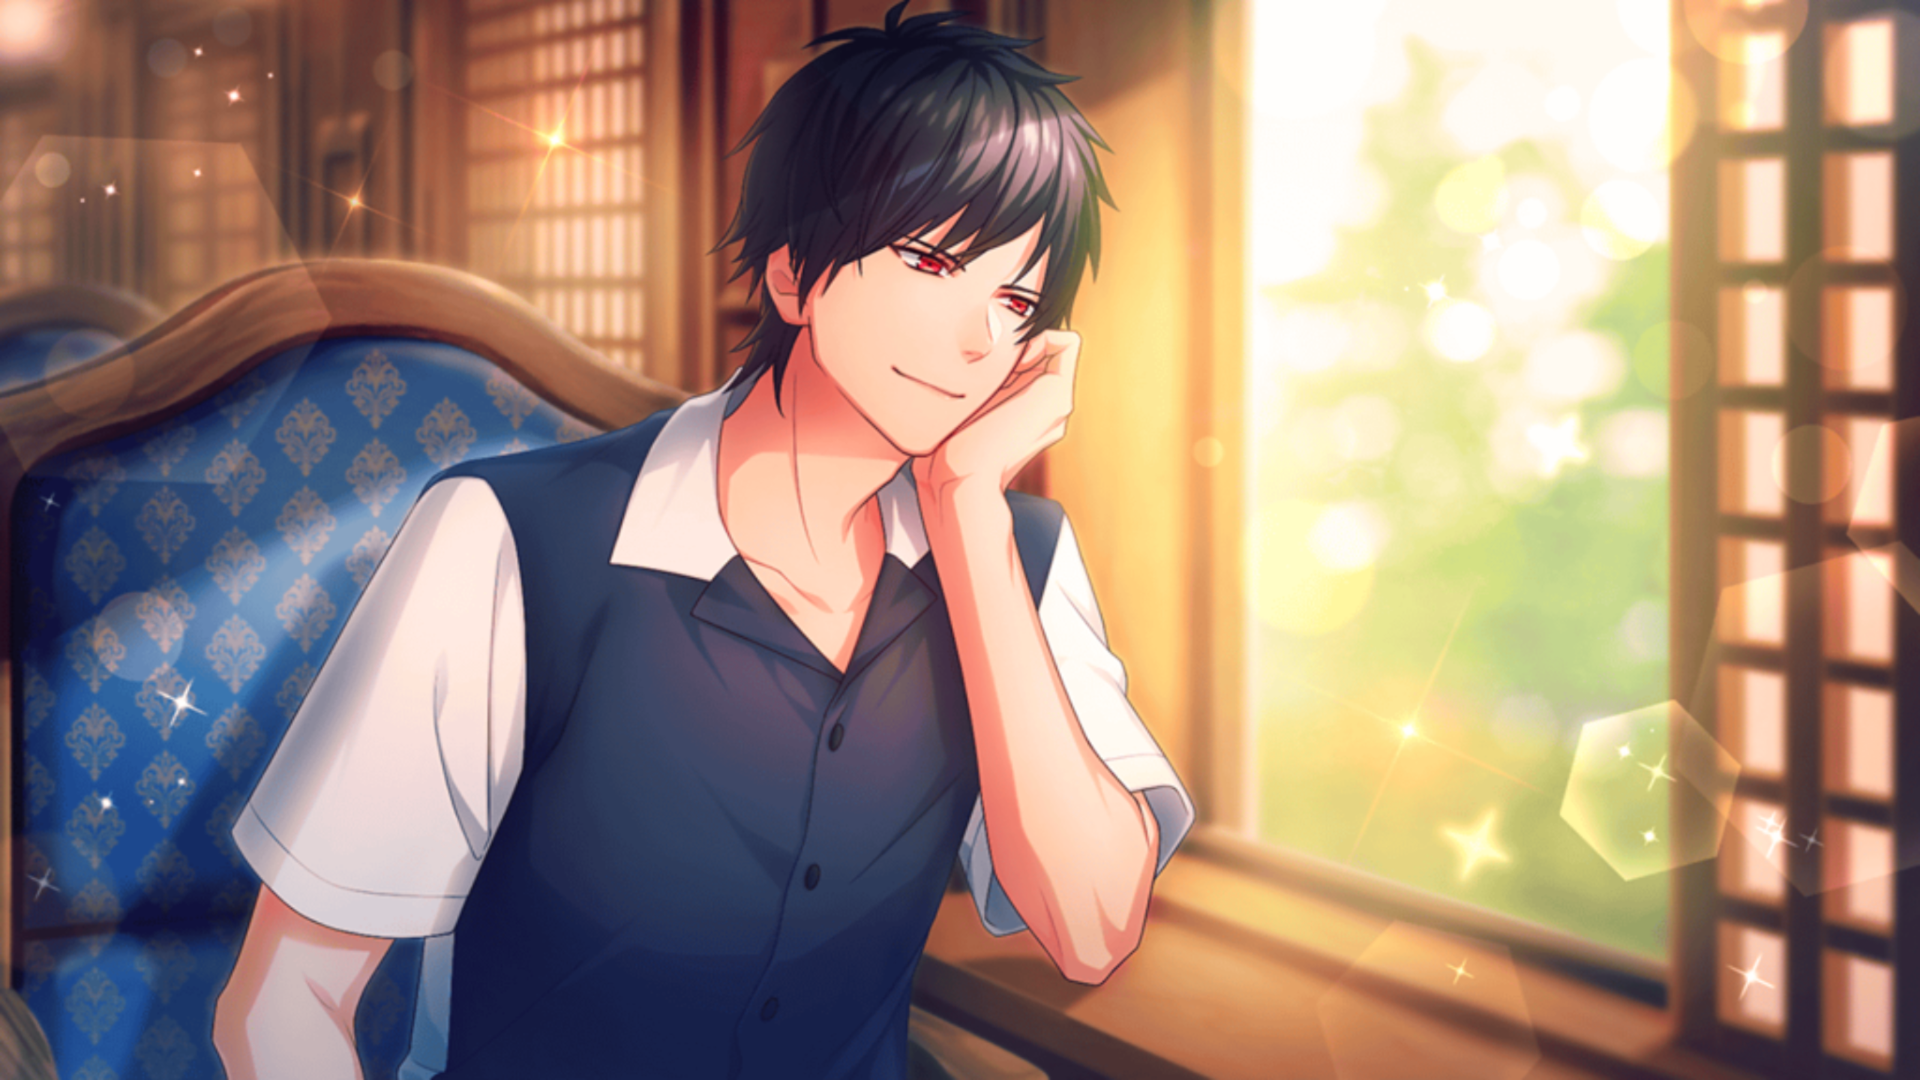 【BIRTHDAY SWEETS】Goshi Kaneshiro Default Full.png